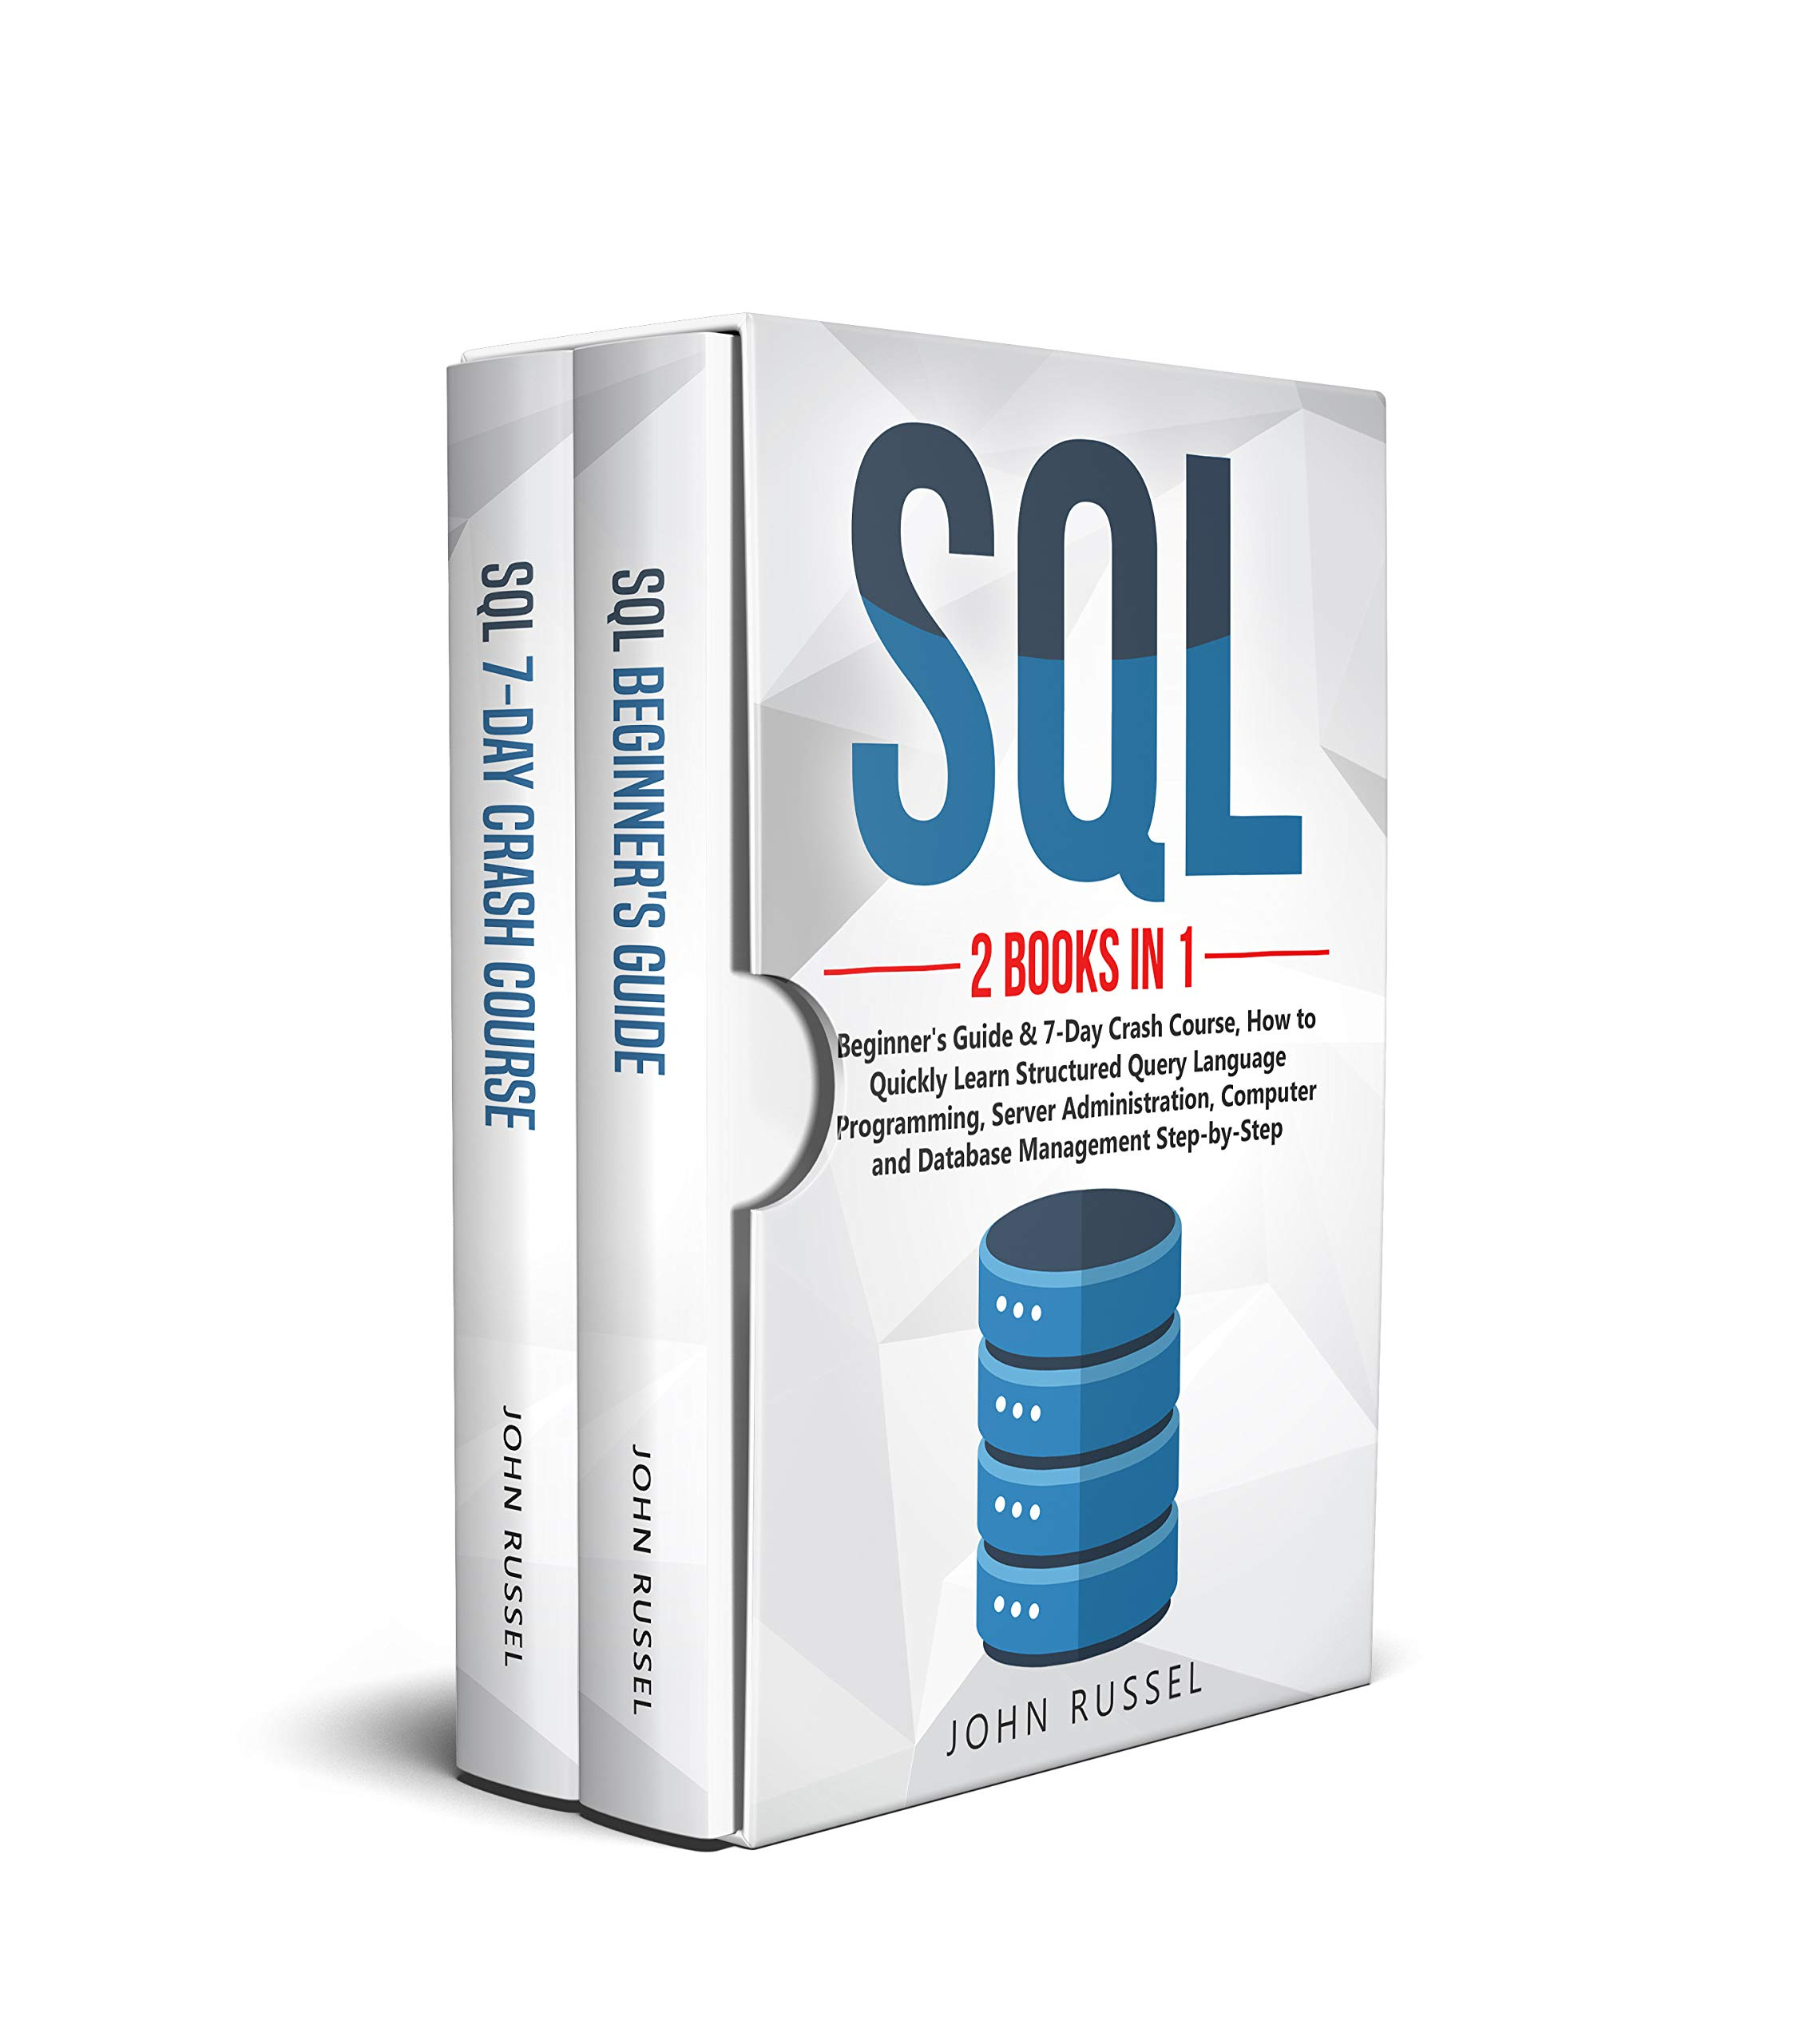 SQL: 2 Books in 1: Beginner's Guide & 7-Day Crash Course, How to Quickly Learn Structured Query Language Programming, Server Administration, Computer and Database Management Step-by-Step